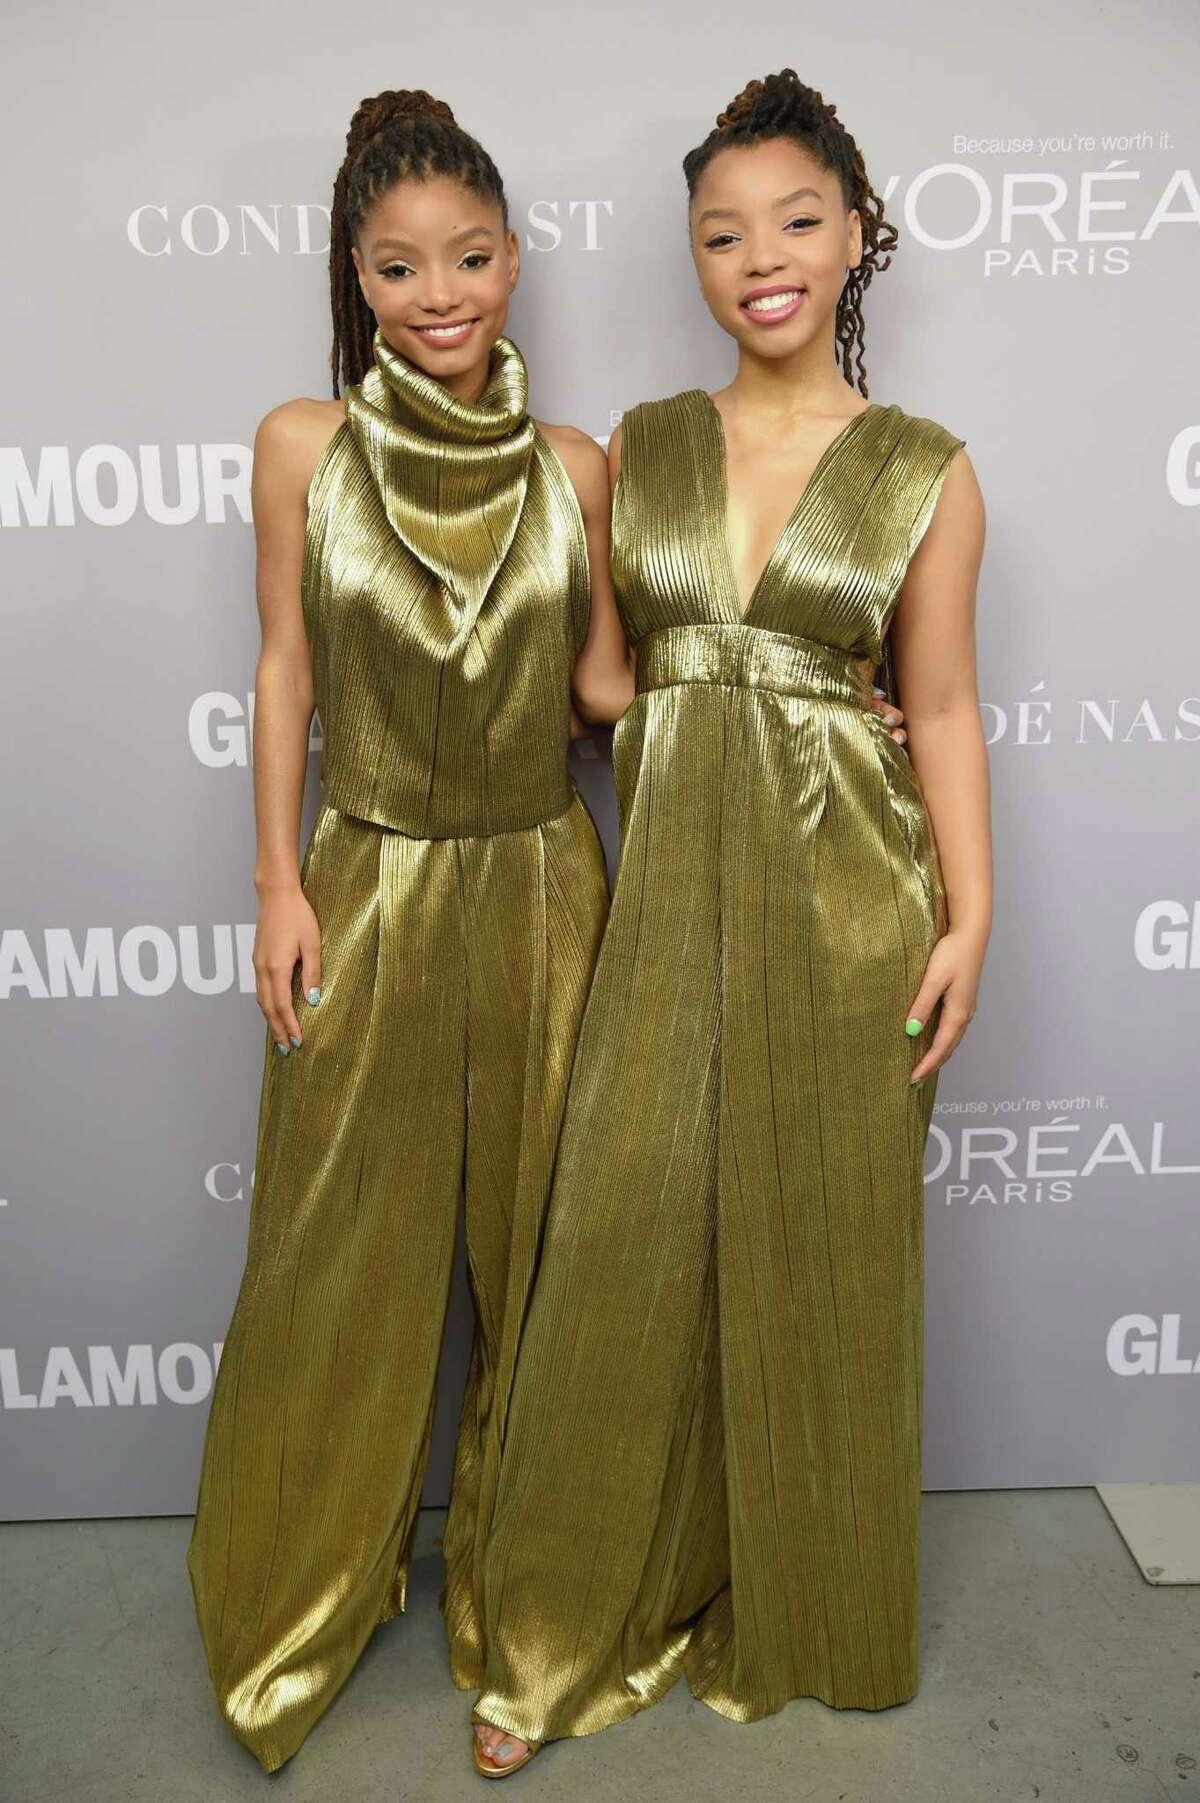 November 2017: Here, the pair wore stunning gold outfits at Glamour's Women of the Year awards. Chloe opted for a jumpsuit, while Halle went with a cowl neck top and pants.